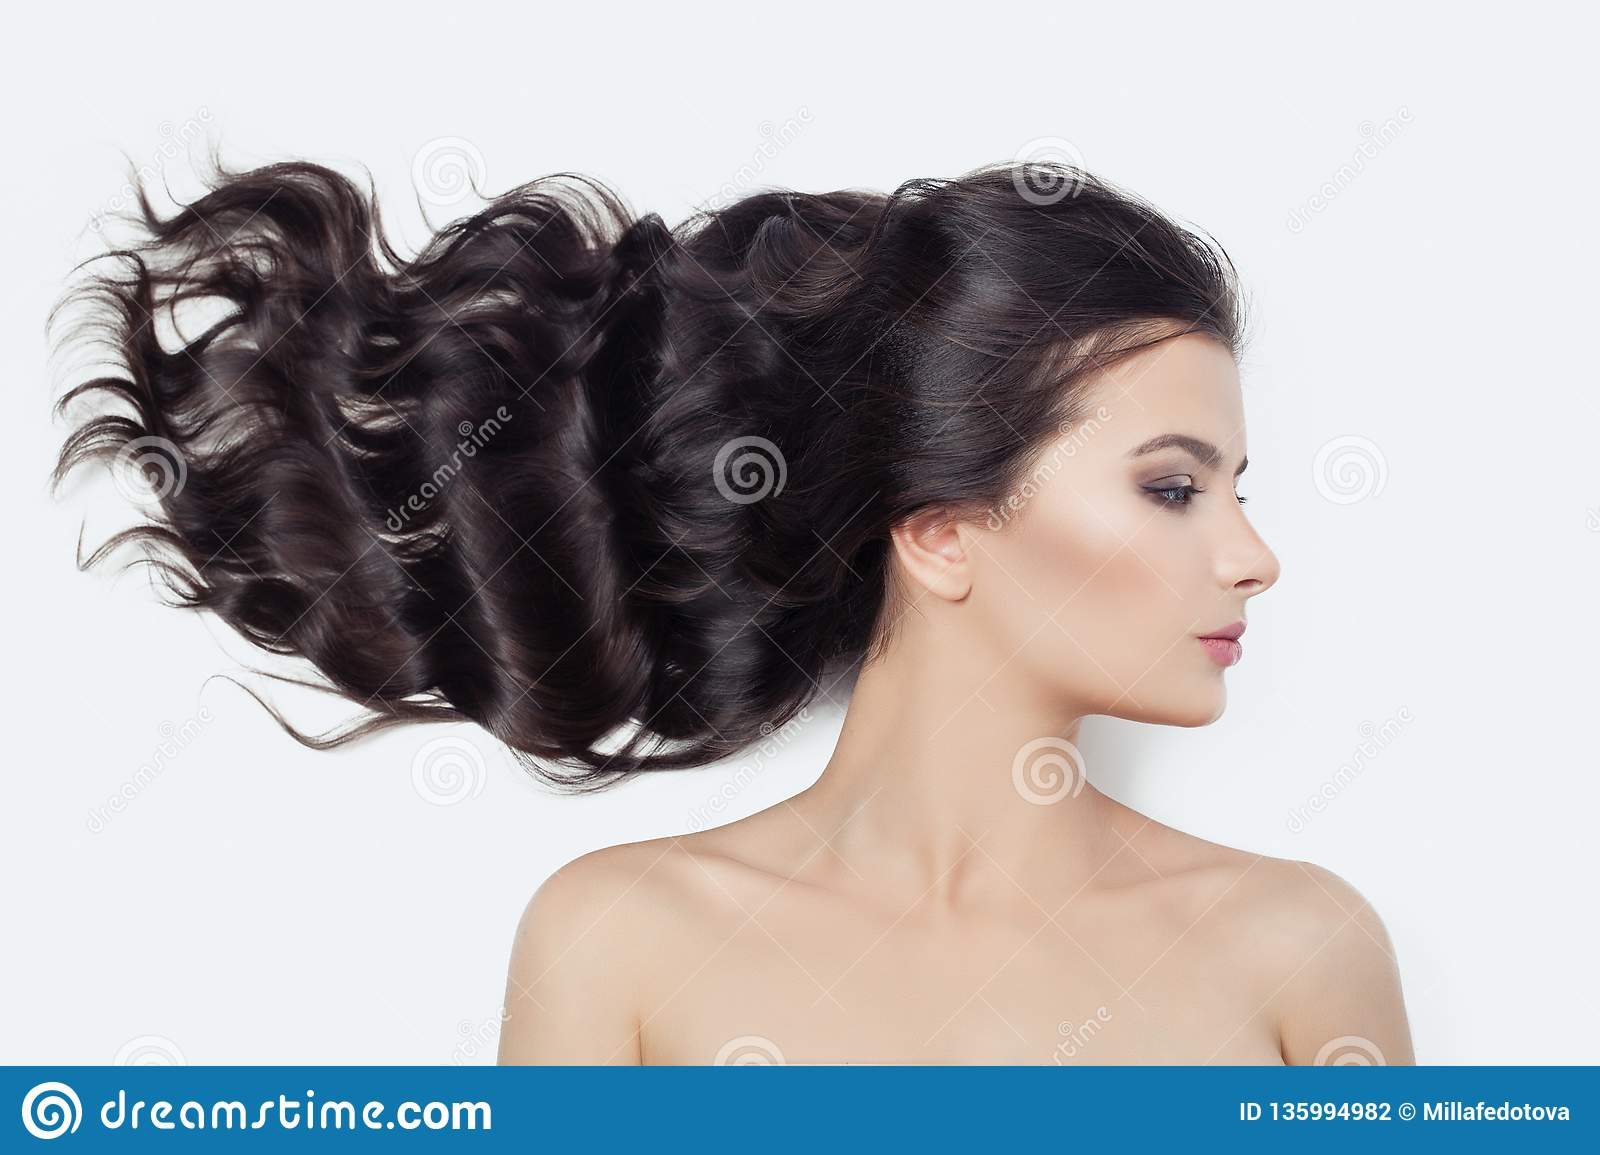 75 835 Hair Profile Photos Free Royalty Free Stock Photos From Dreamstime